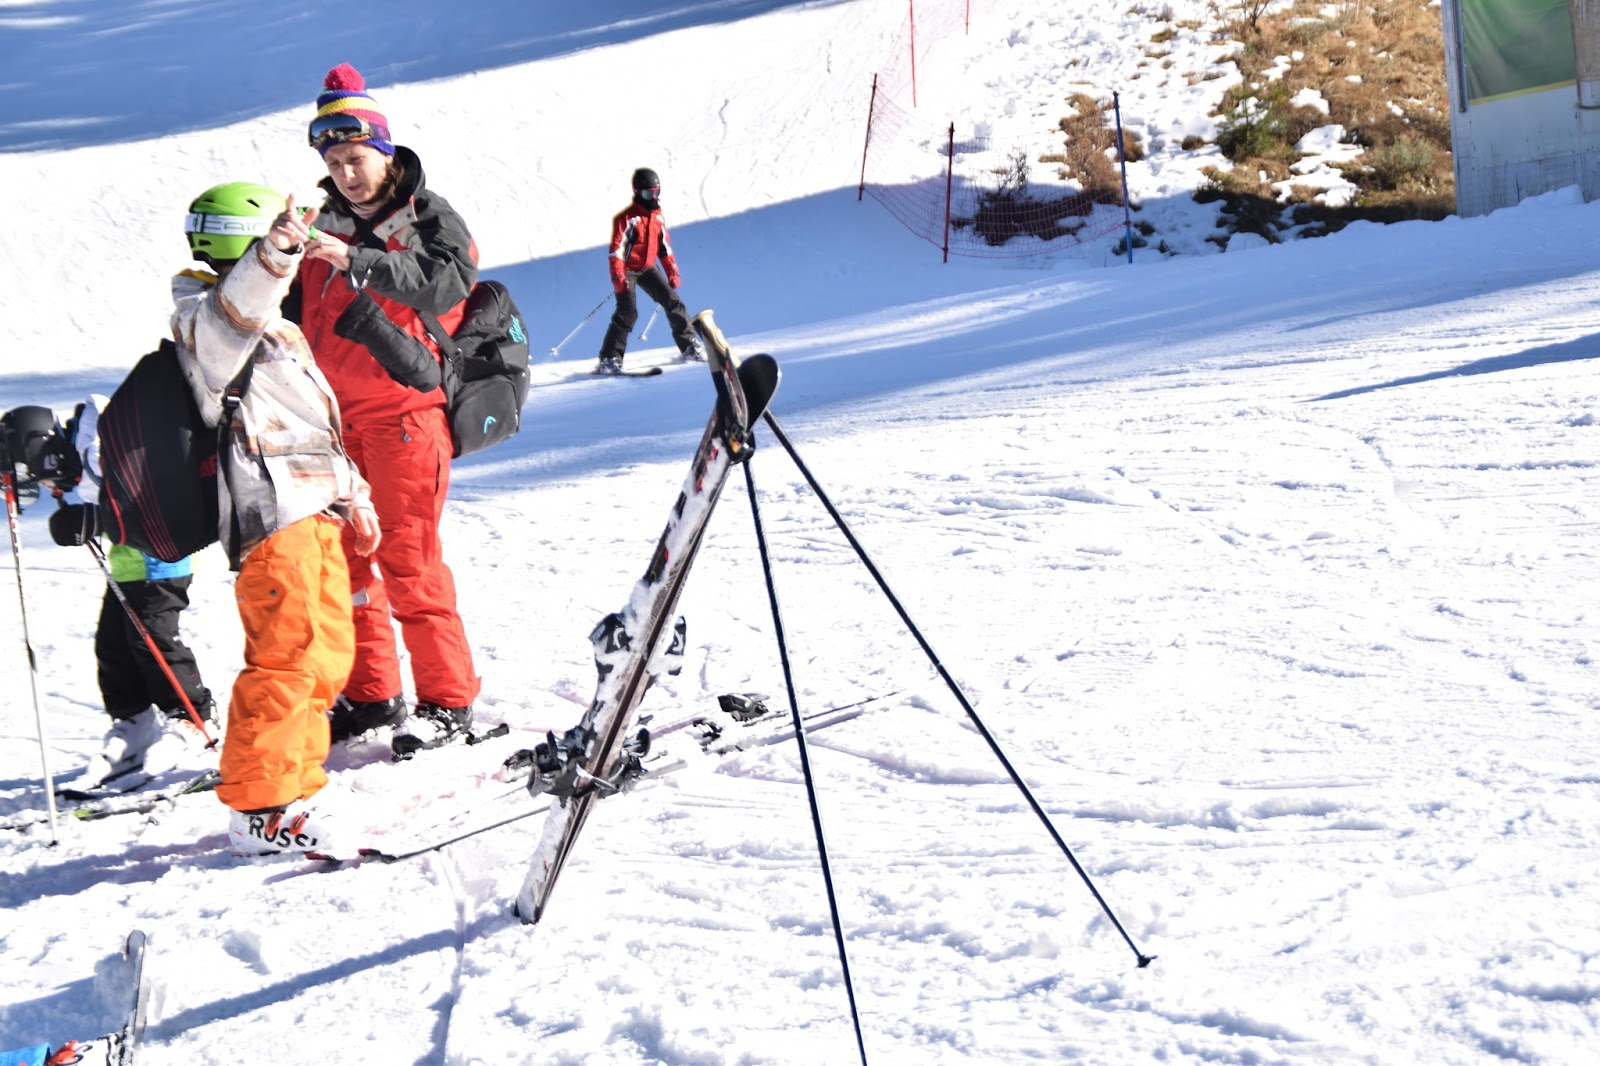 Ski Lessons At Bansko Ski Resort